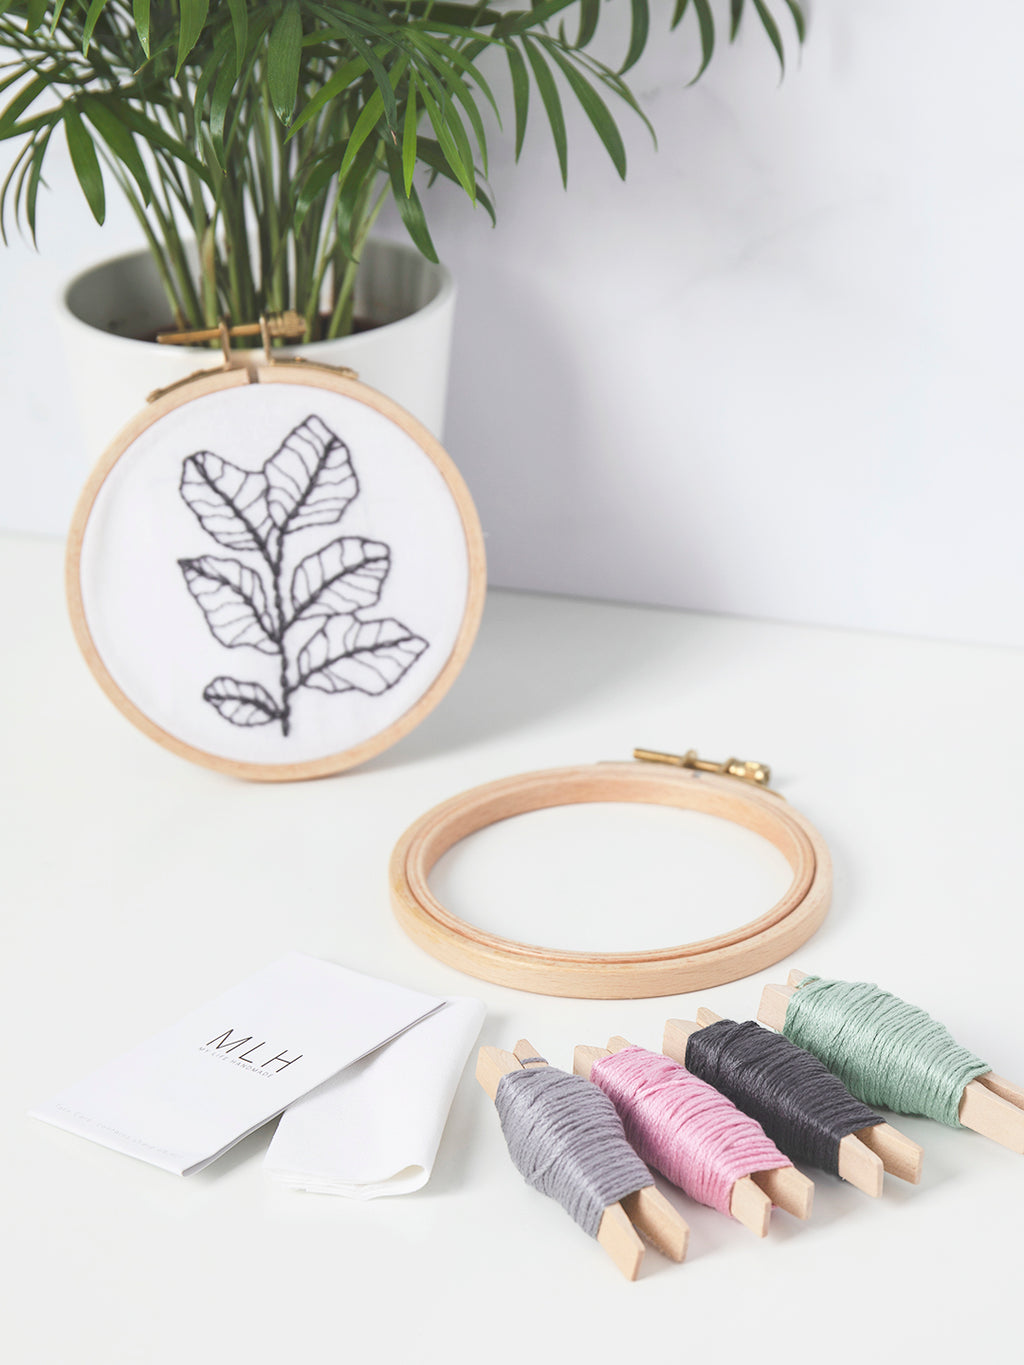 Mini Embroidery Hoop Kit | Make Range | Buy Online at My Life Handmade